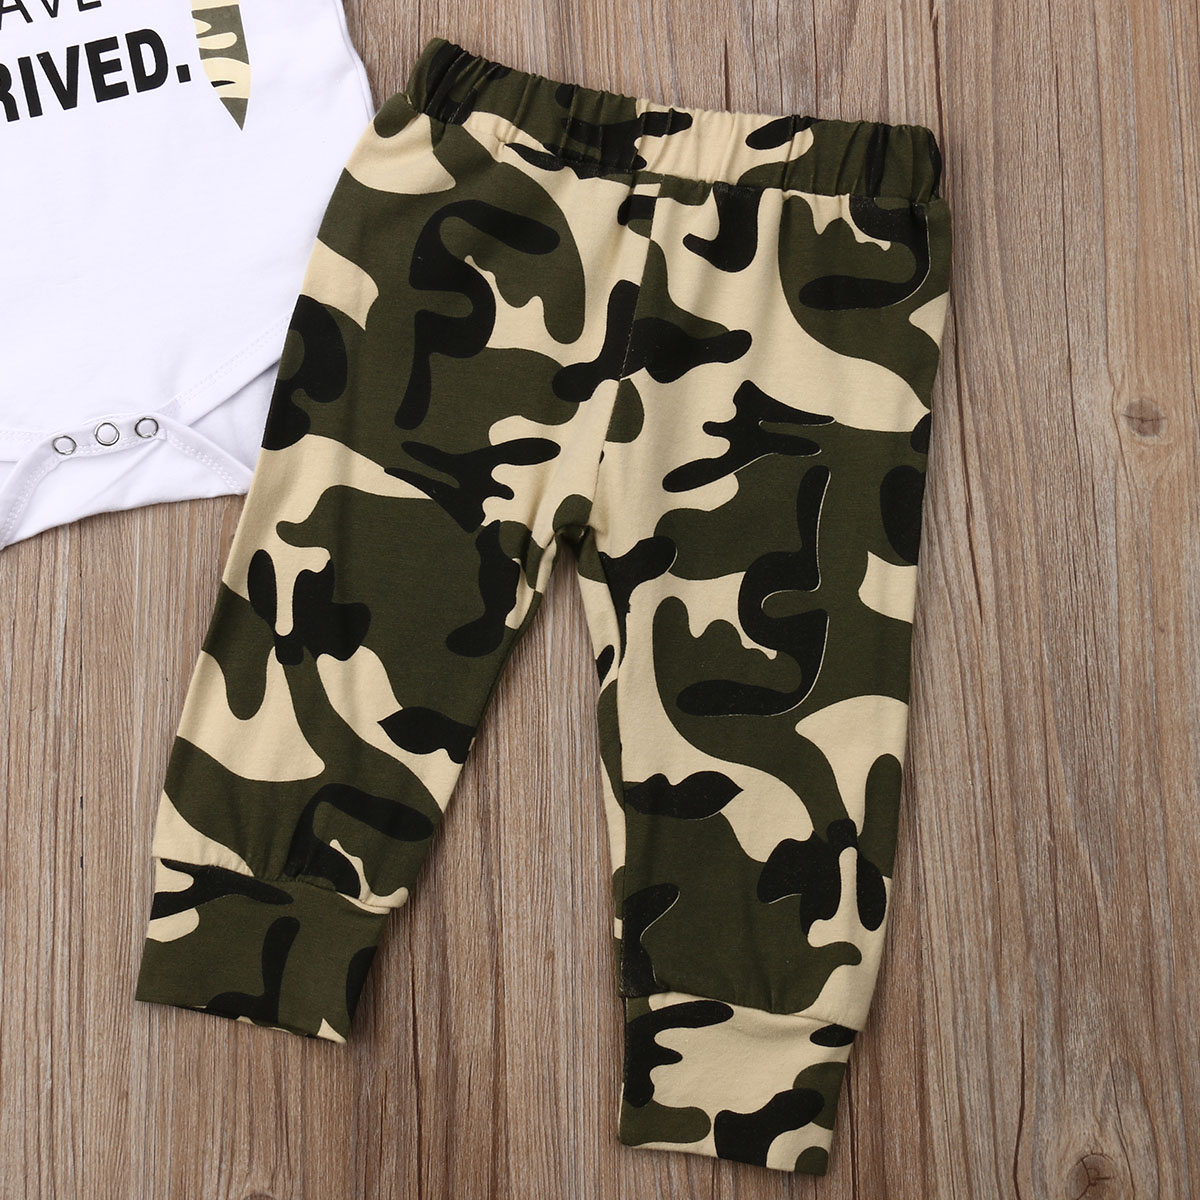 Handsome Baby Boy Camo Pants Outfits Infants Summer New White Short Short Sleeve Bodysuits Tops Army Green Elastic Trousers in Clothing Sets from Mother Kids